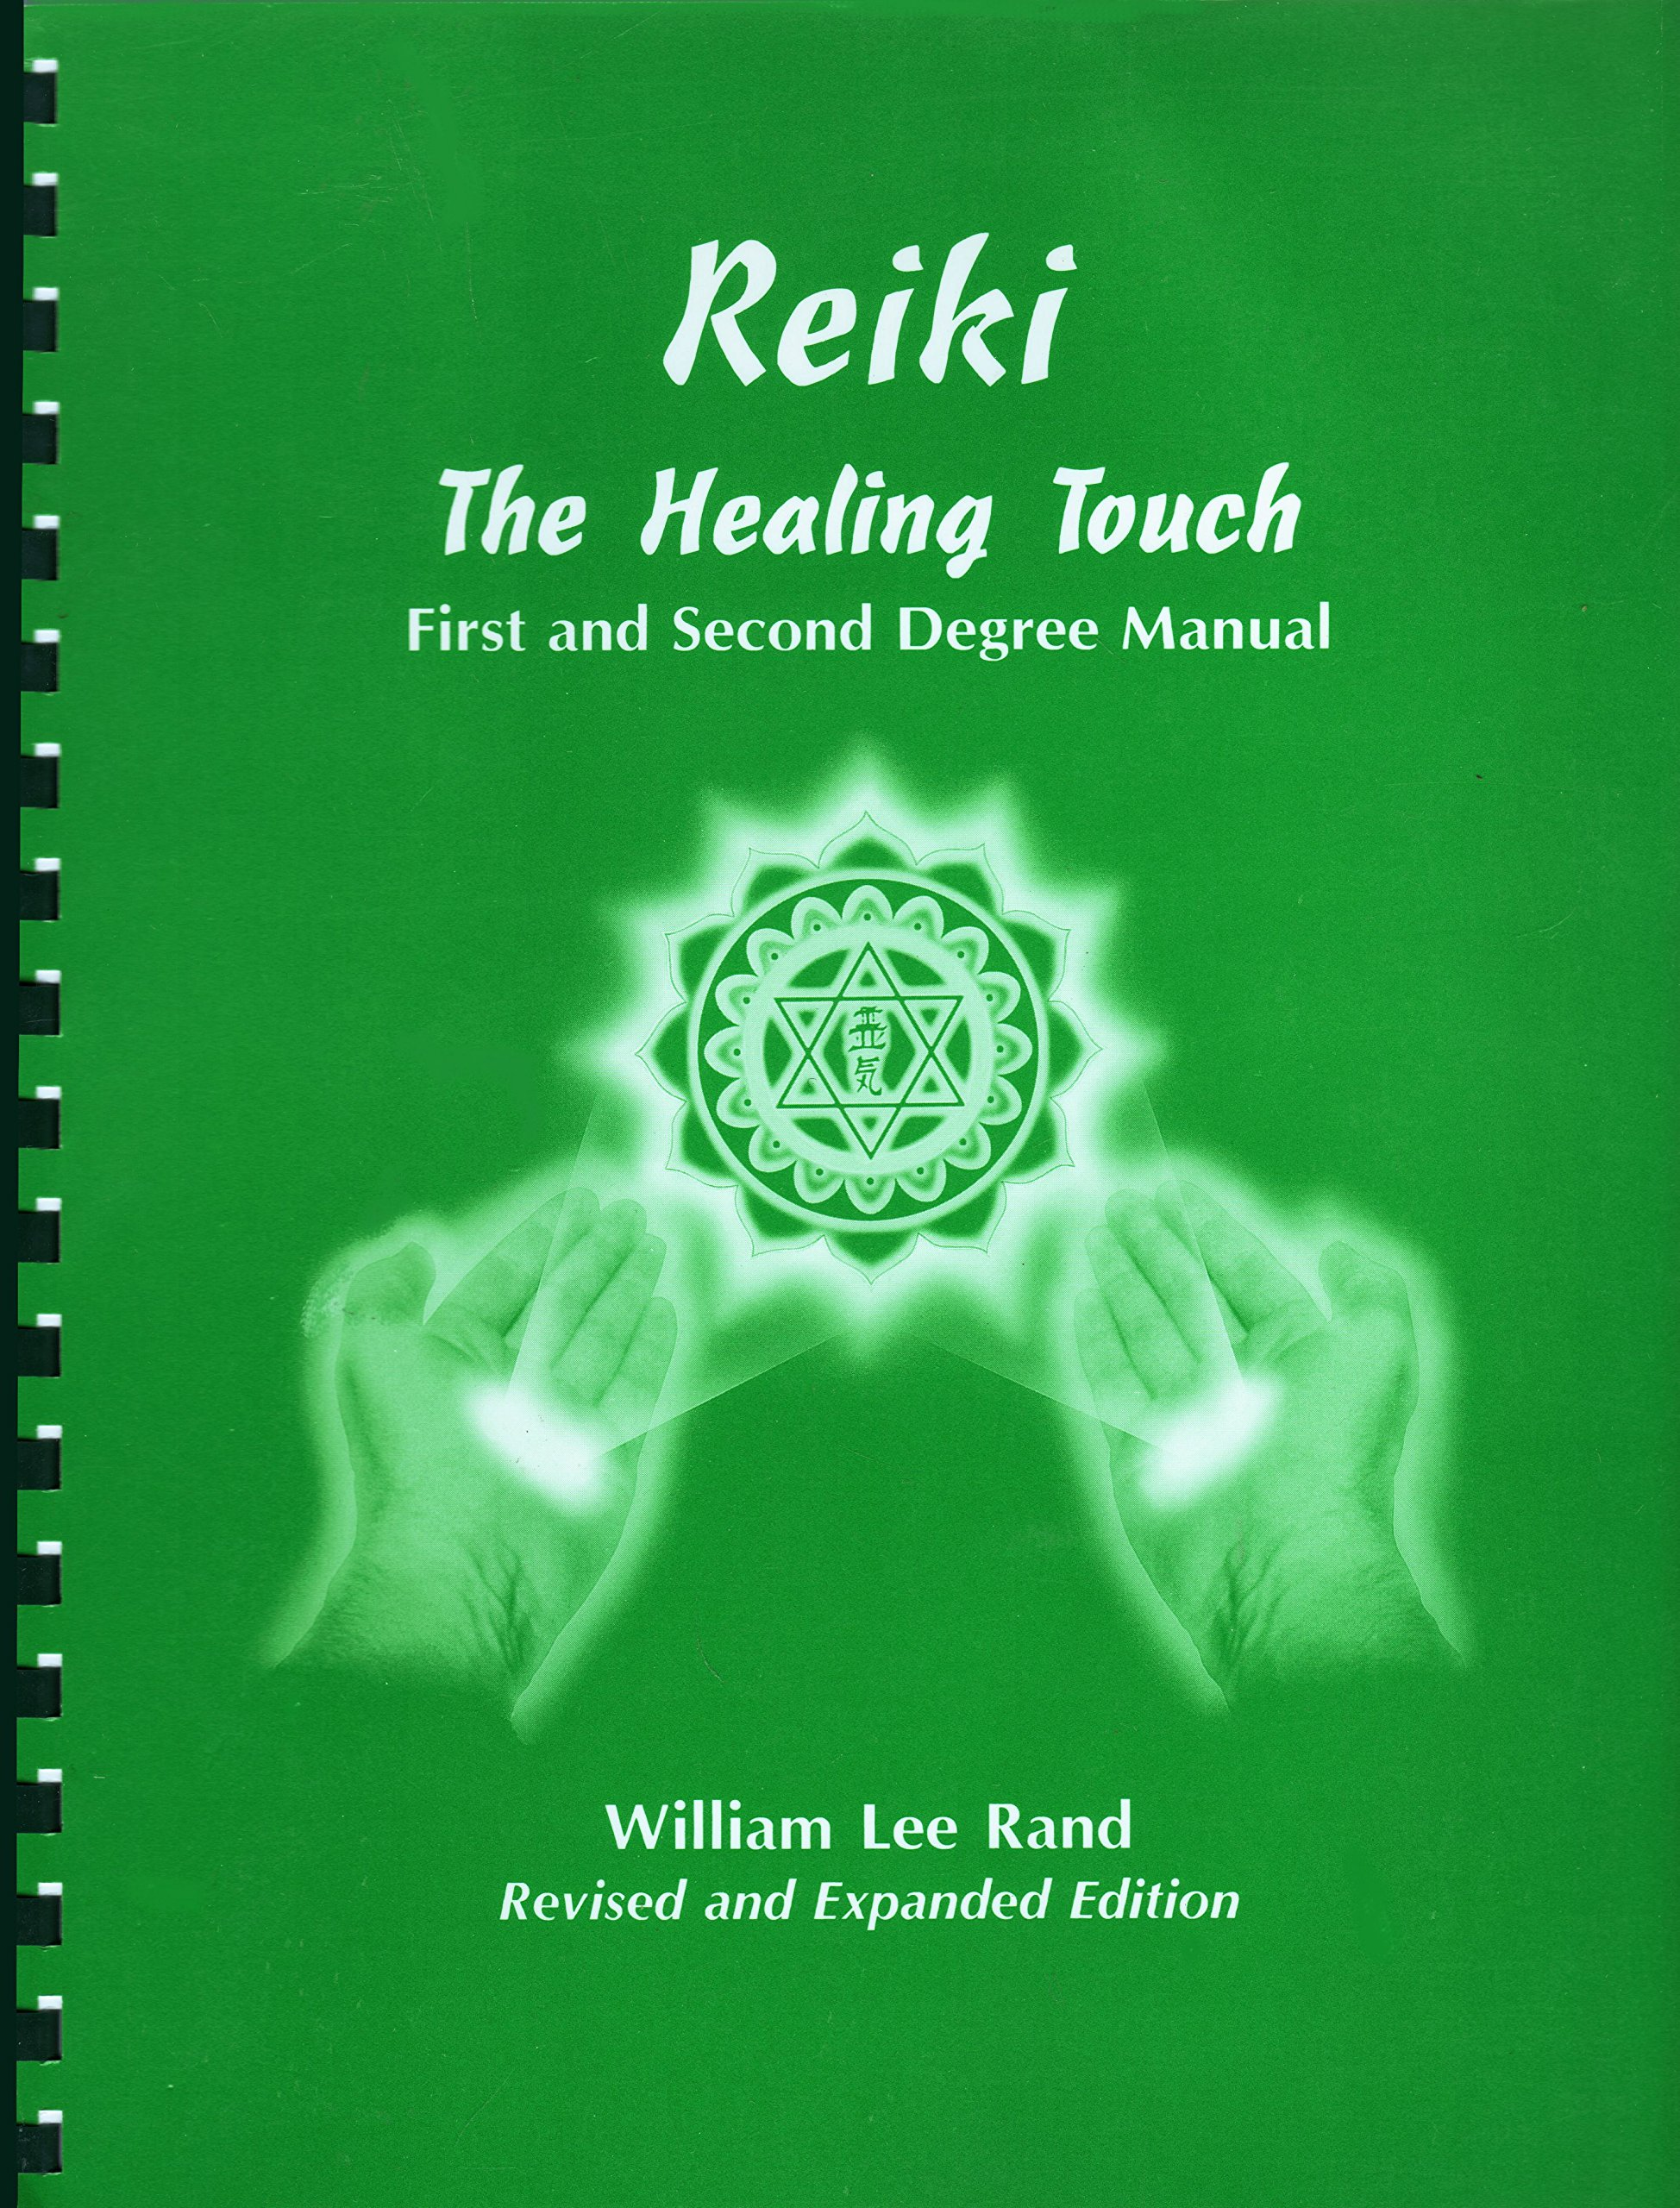 Reiki The Healing Touch First and Second Degree Manual: William Rand, Cindy  Saul, Sheryl M. Matsko: Amazon.com: Books